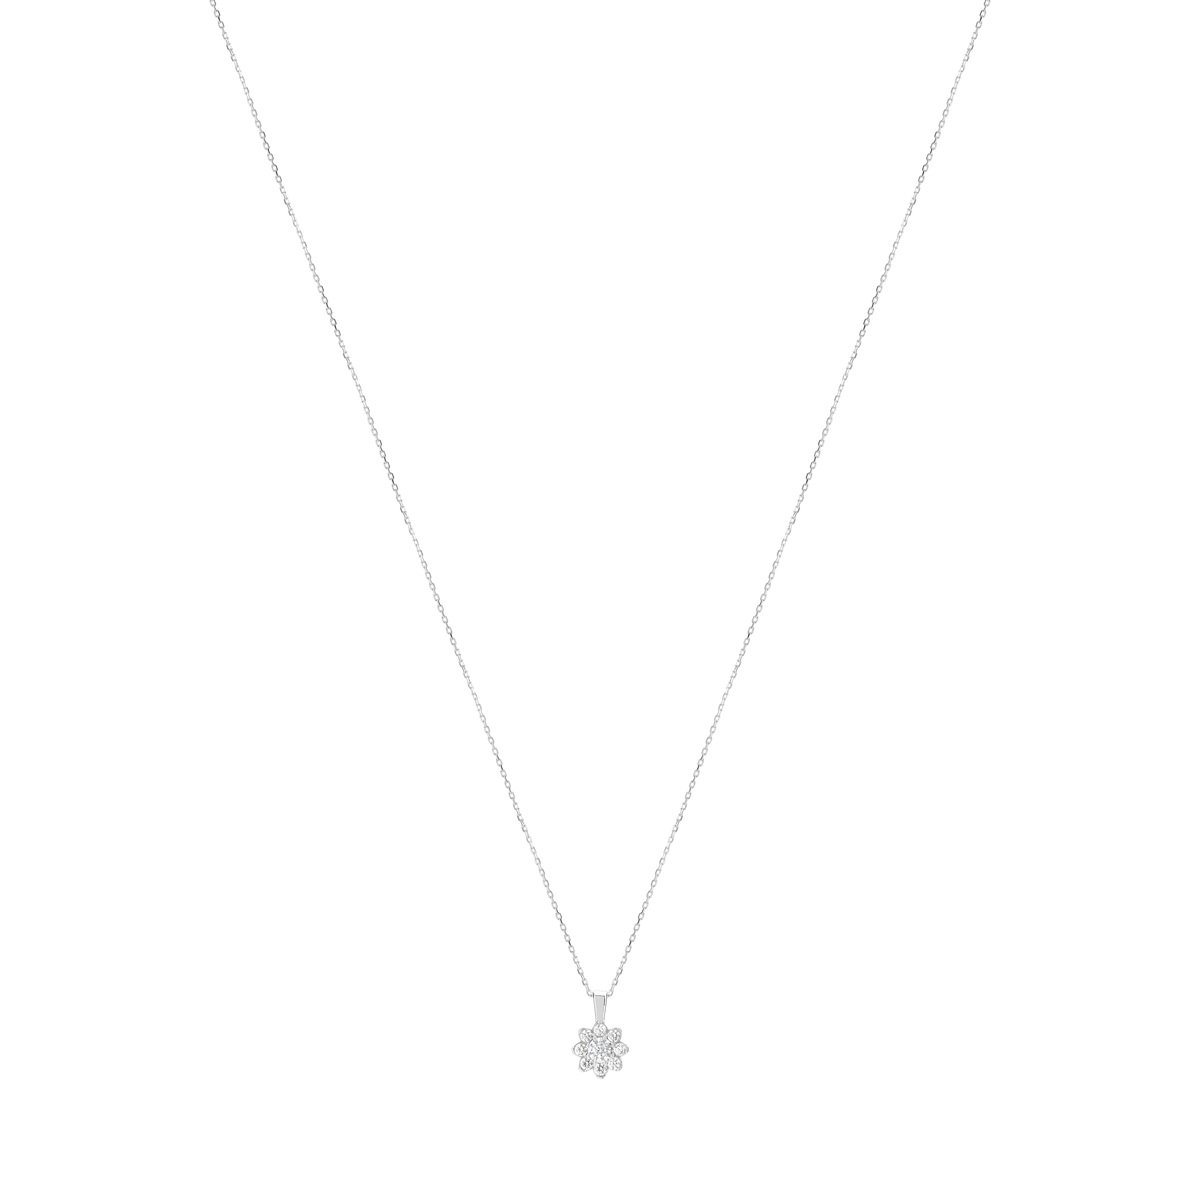 Collier or 750 blanc diamant synthétique - vue 1